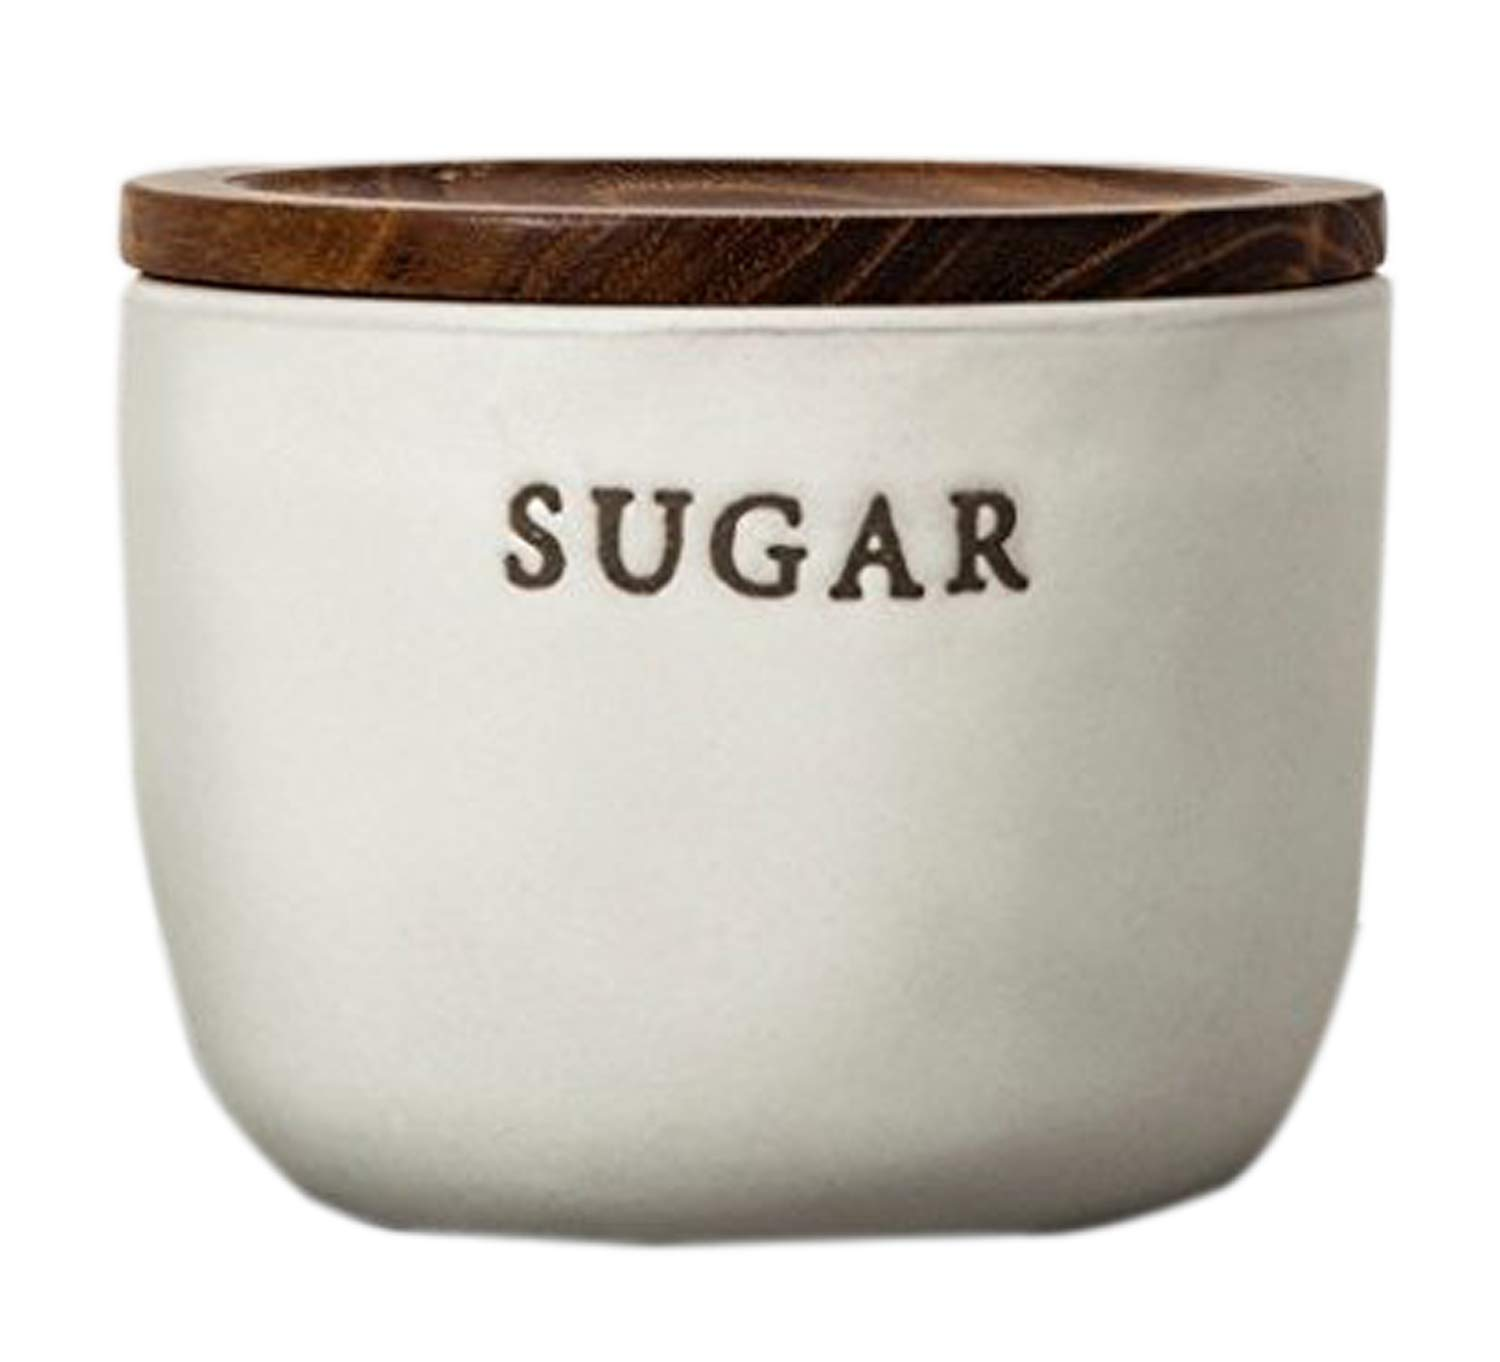 Hearth and Hand with Magnolia Stoneware Sugar Cellar Cream Joanna Gaines Collection Limited Edition by Hearth and Hand with Magnolia